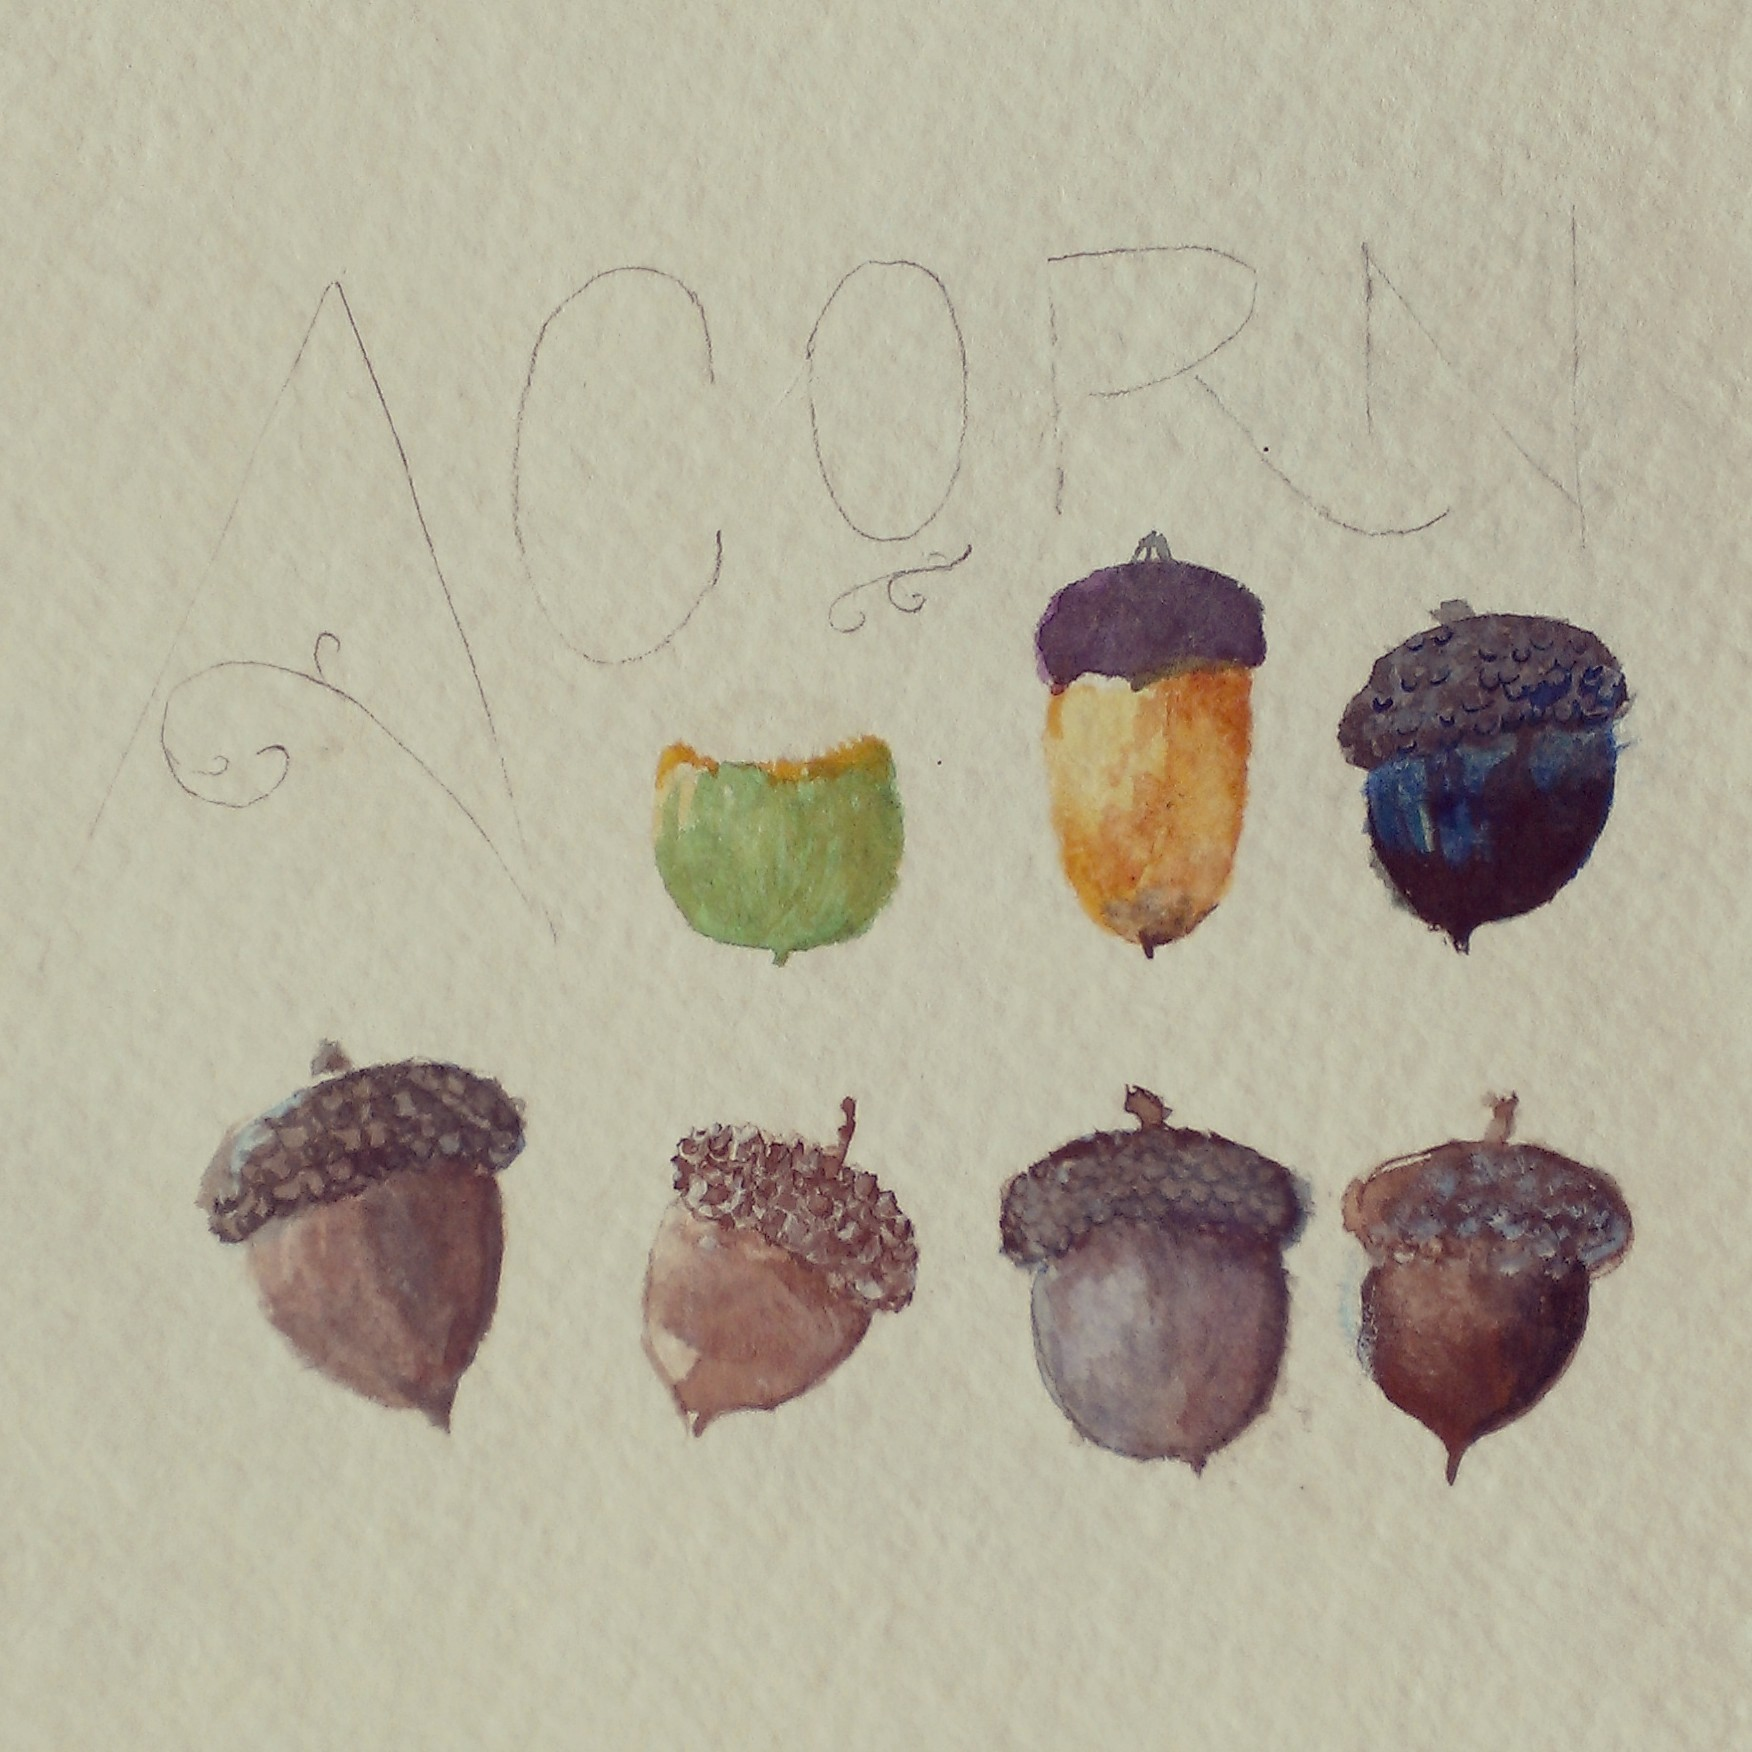 Work in Progress: Acorns